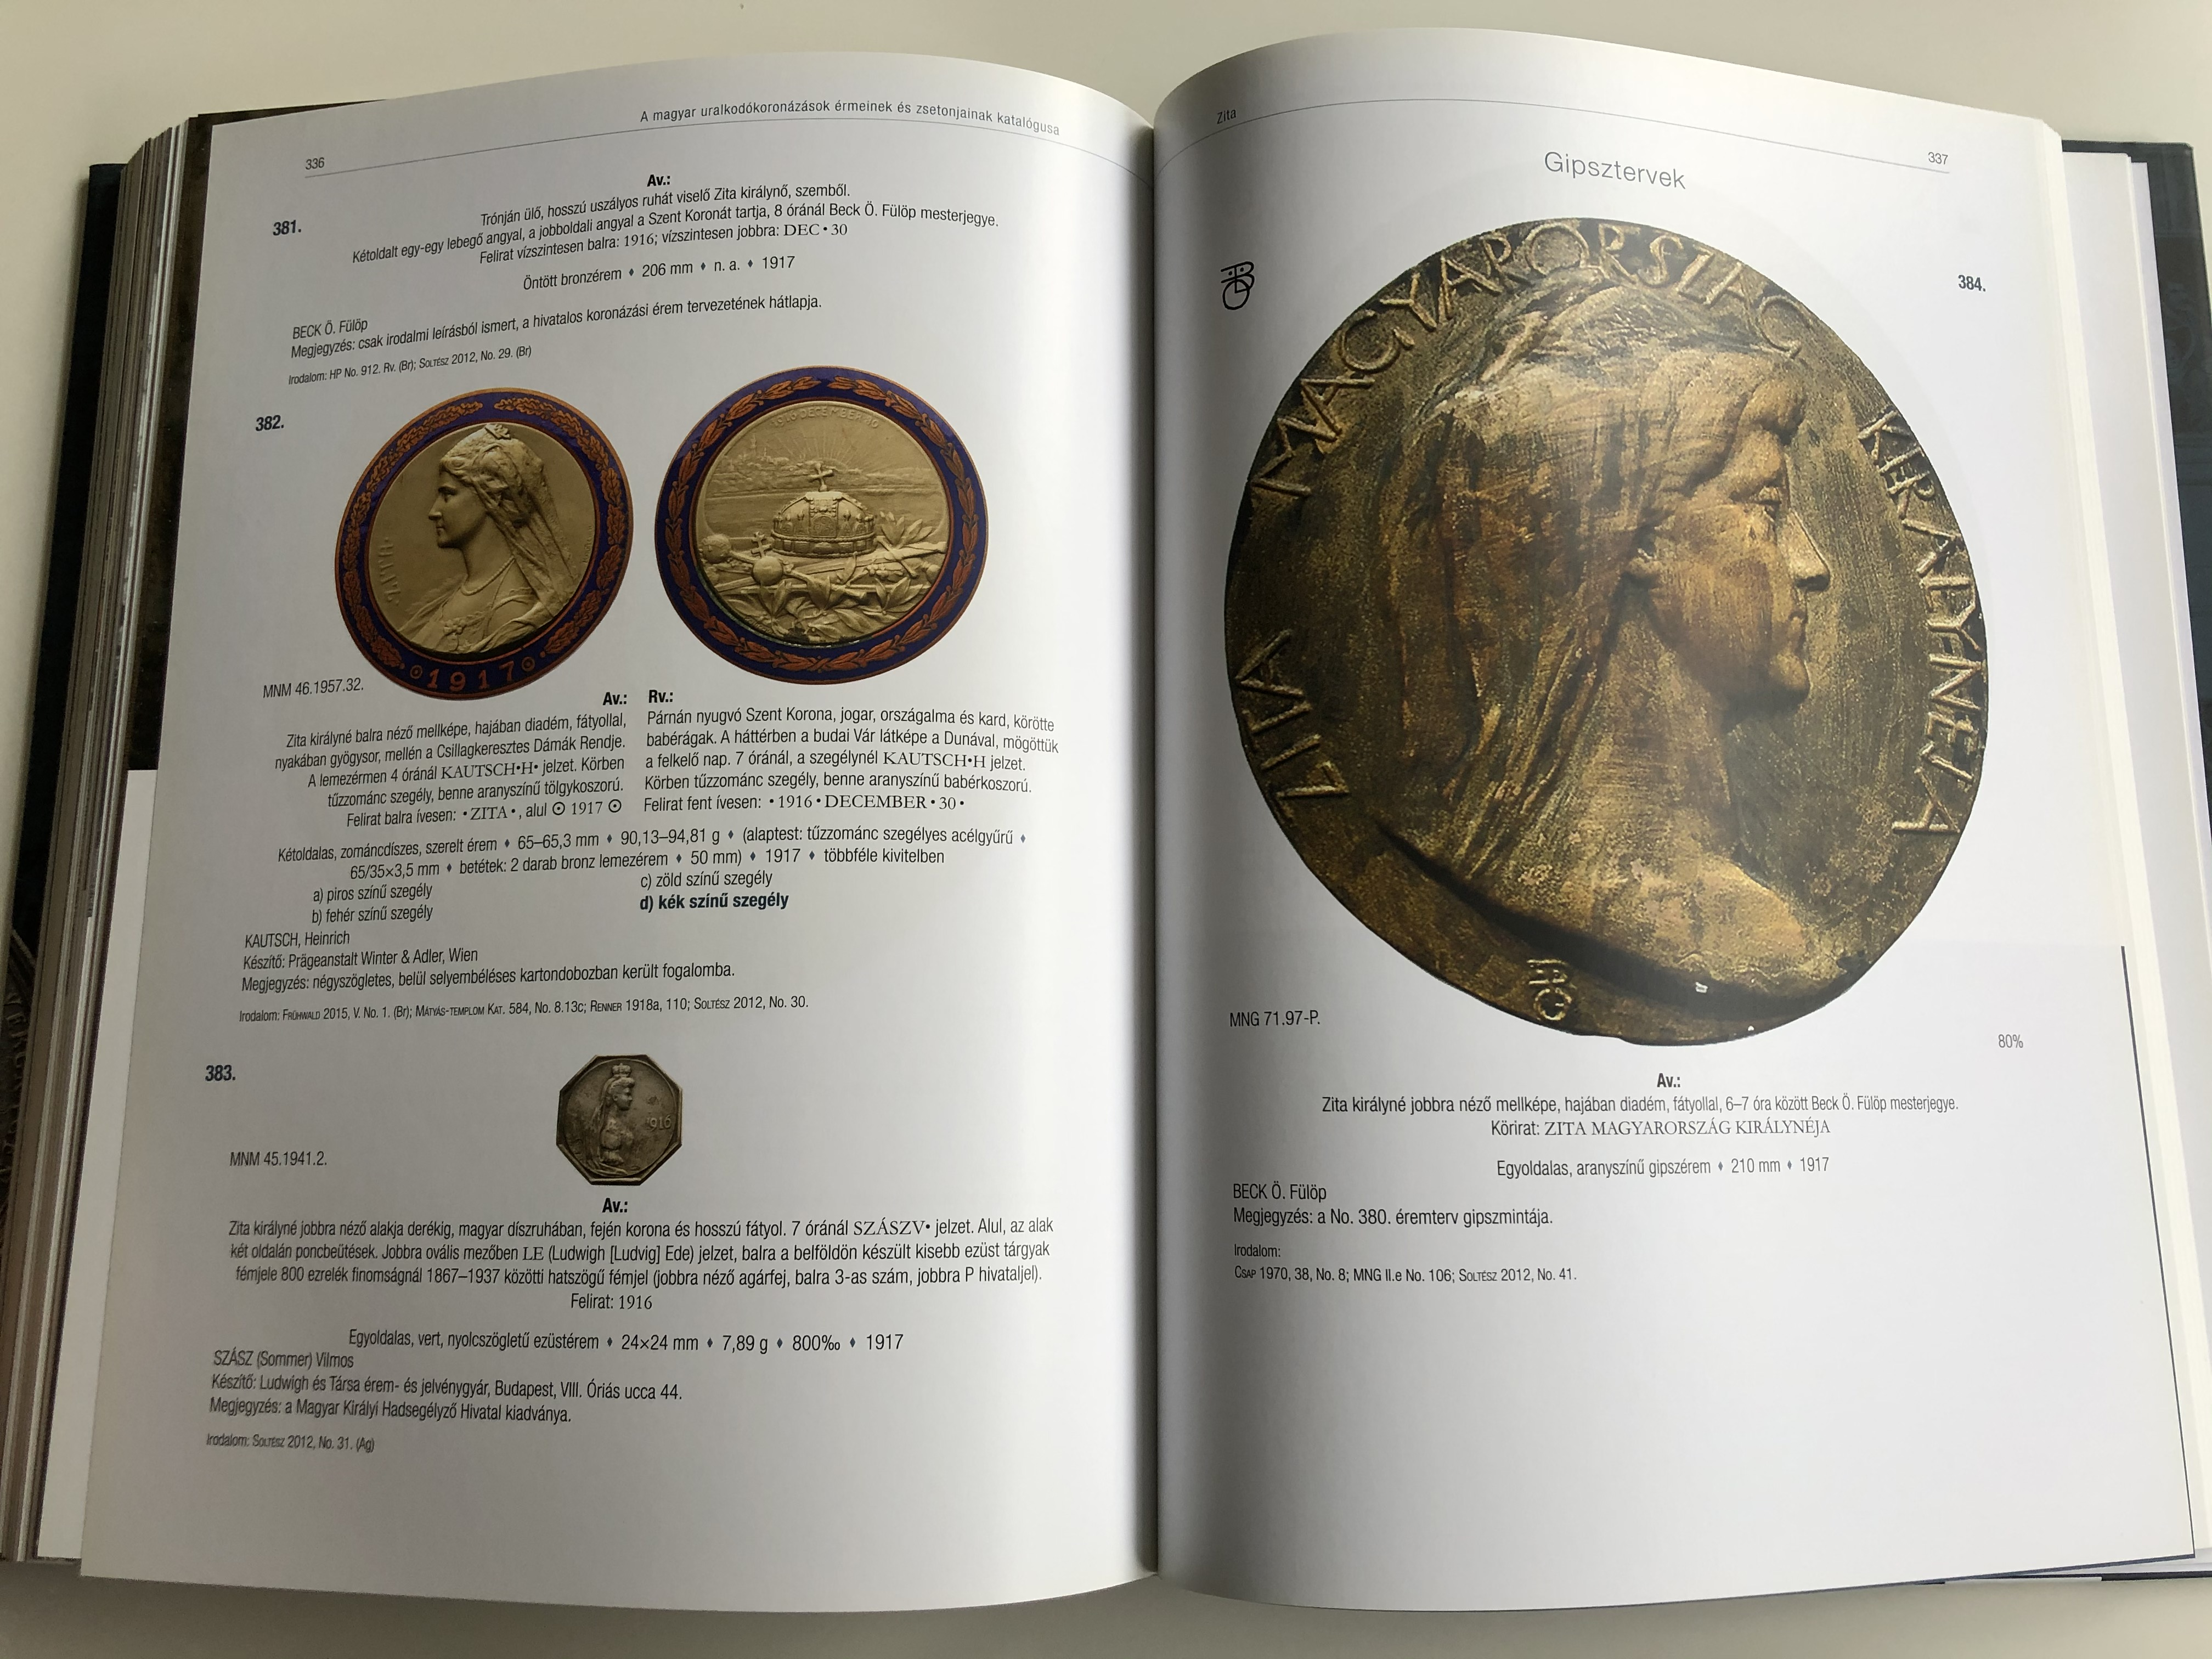 -catalog-of-hungarian-coins-of-rulers-from-1508-1916-coronatio-hungarica-in-nummis-20.jpg